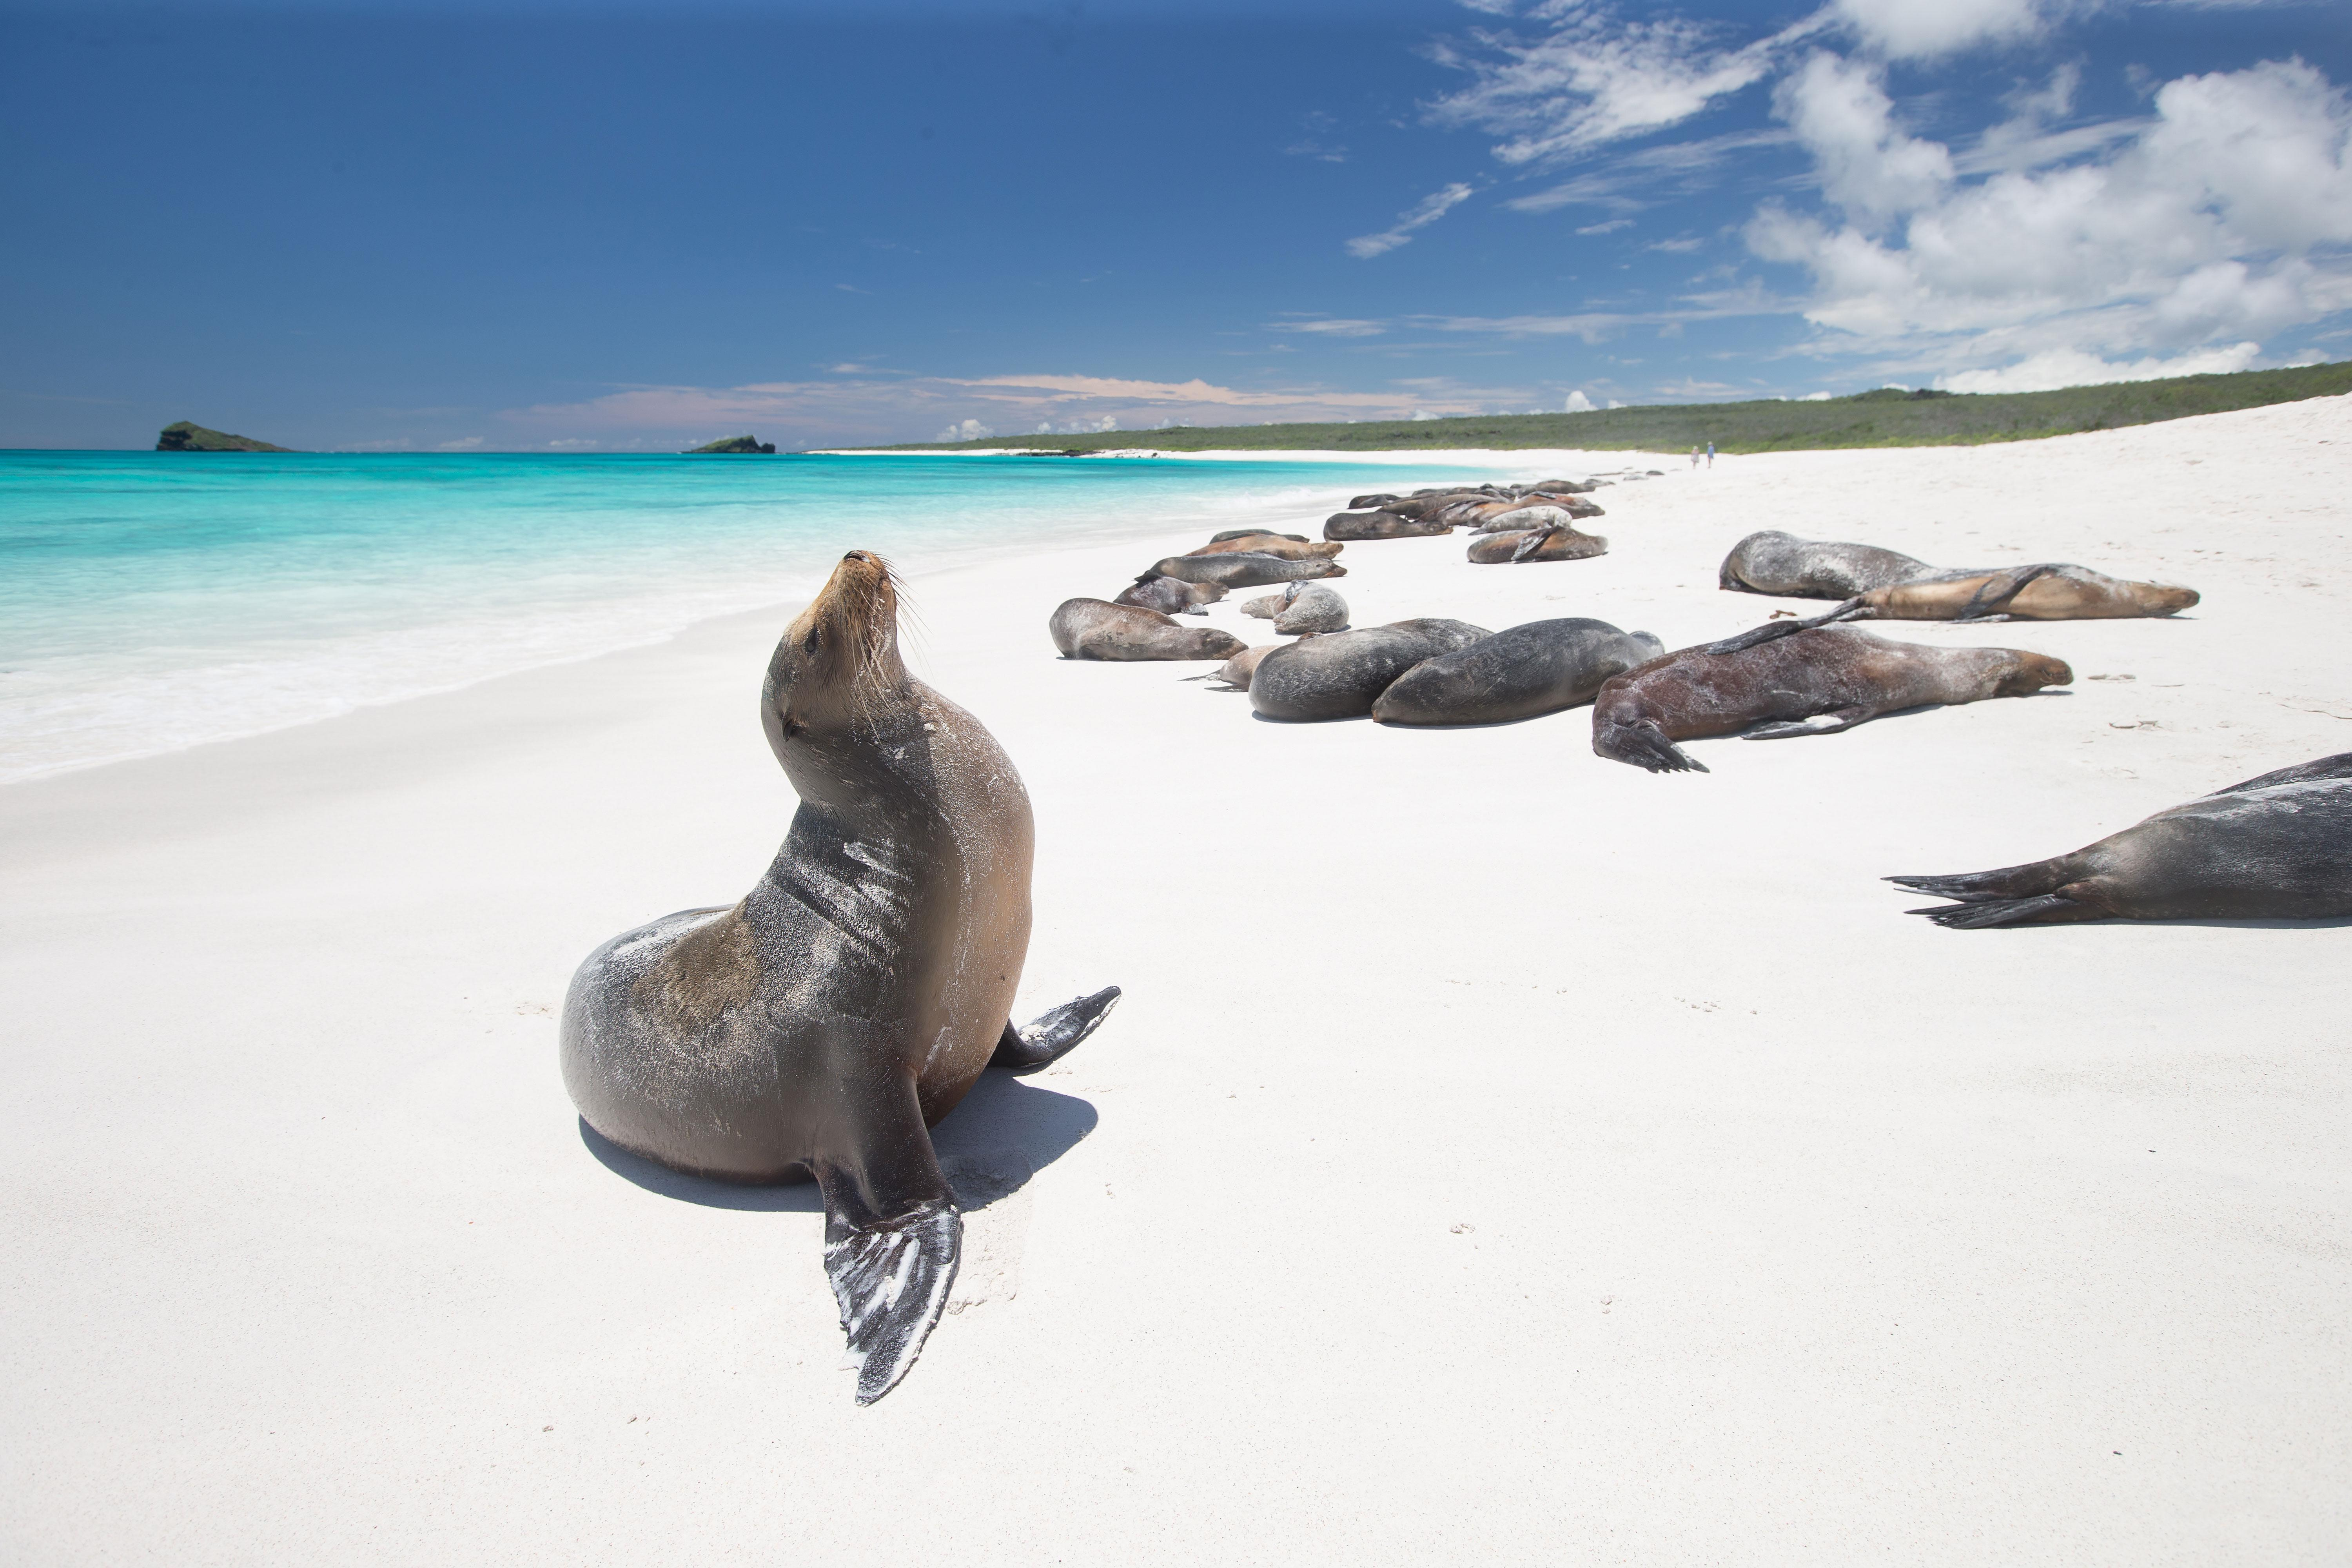 """<p>Luxury goes exploring as the Galapagos welcomes the first true luxury options ever to grace the islands where Darwin realized his theory of evolution. <a href=""""http://www.pikaialodgegalapagos.com"""" rel=""""nofollow noopener"""" target=""""_blank"""" data-ylk=""""slk:Pikaia Lodge"""" class=""""link rapid-noclick-resp""""><strong>Pikaia Lodge</strong></a> promises African-style luxury with haute cuisine, stunning accommodations and daily """"game"""" experiences by land or by sea on one of their private luxury yachts. Guests can choose to be more active by hiking volcanoes and mountain biking or more explore passively by observing wildlife from the comfort of a Zodiac. Meanwhile, for traditionalists, <a href=""""http://www.silversea.com"""" rel=""""nofollow noopener"""" target=""""_blank"""" data-ylk=""""slk:Silversea"""" class=""""link rapid-noclick-resp""""><strong>Silversea</strong></a> opens up a new era in luxury cruising along these heavily regulated islands, with its new expedition ship that fuses the creature comforts of Silversea Cruises with the academic insight and sense of adventure of a classic expedition ship. </p>"""